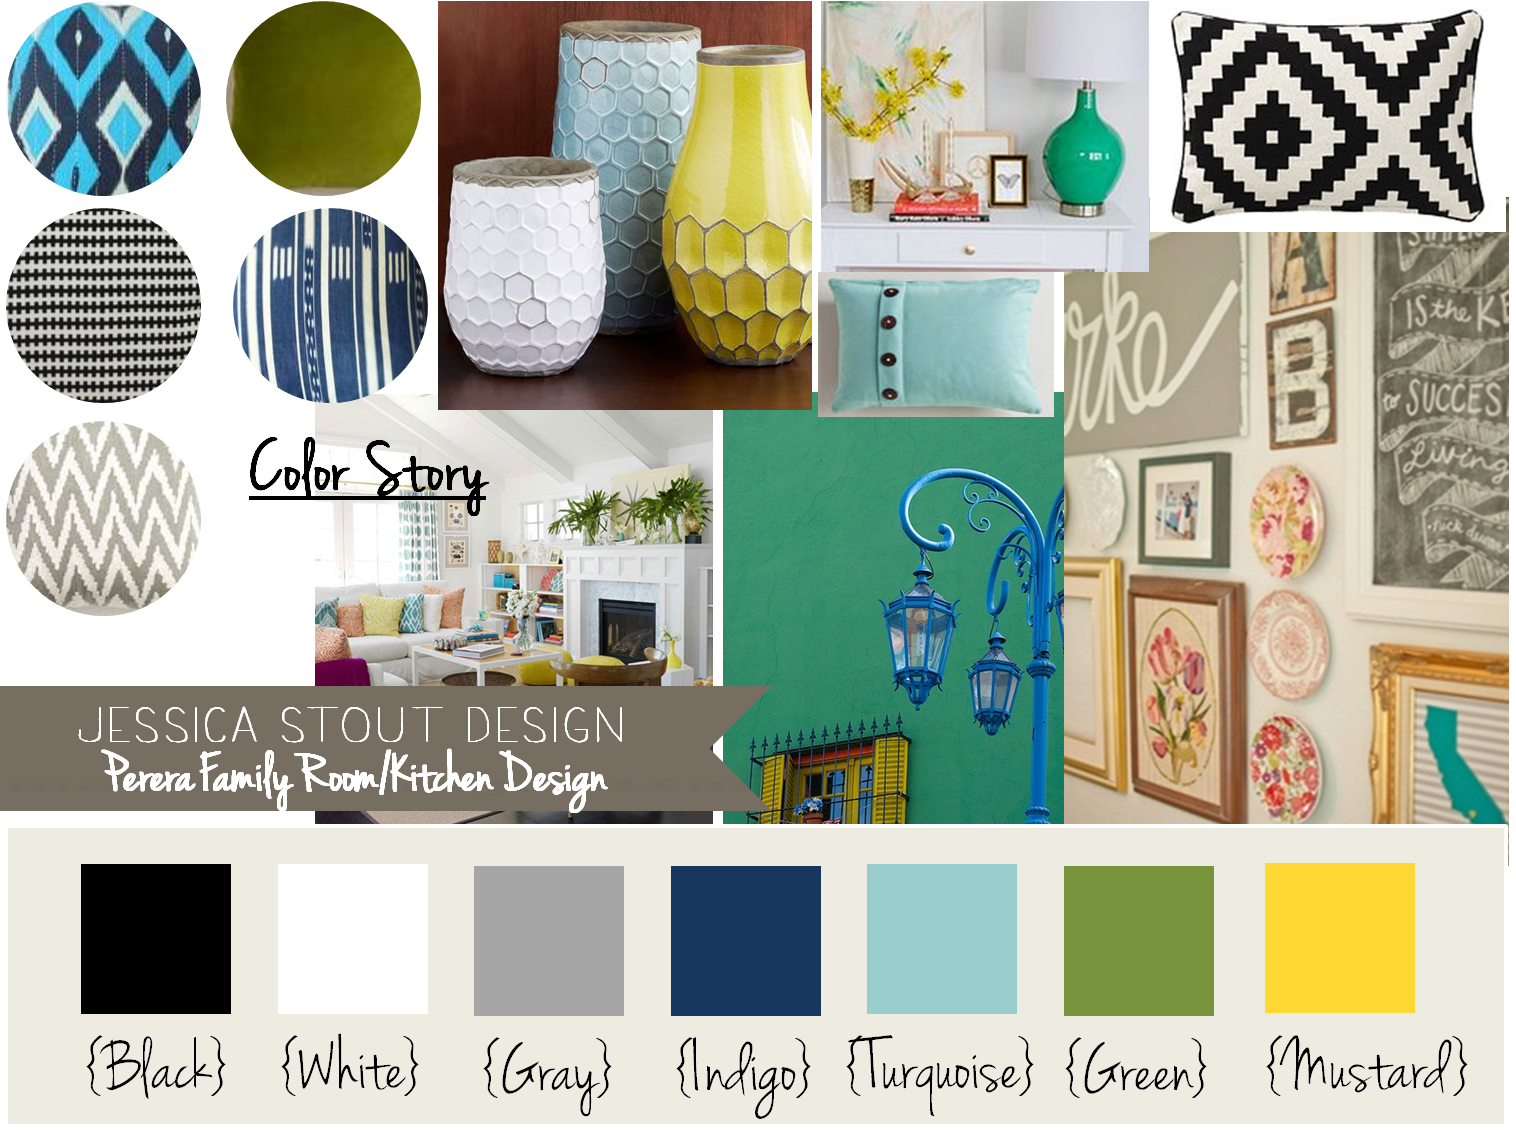 Teal and yellow living room - I Like The Navy Turquoise Yellow Gray And Green Happy Color Palate